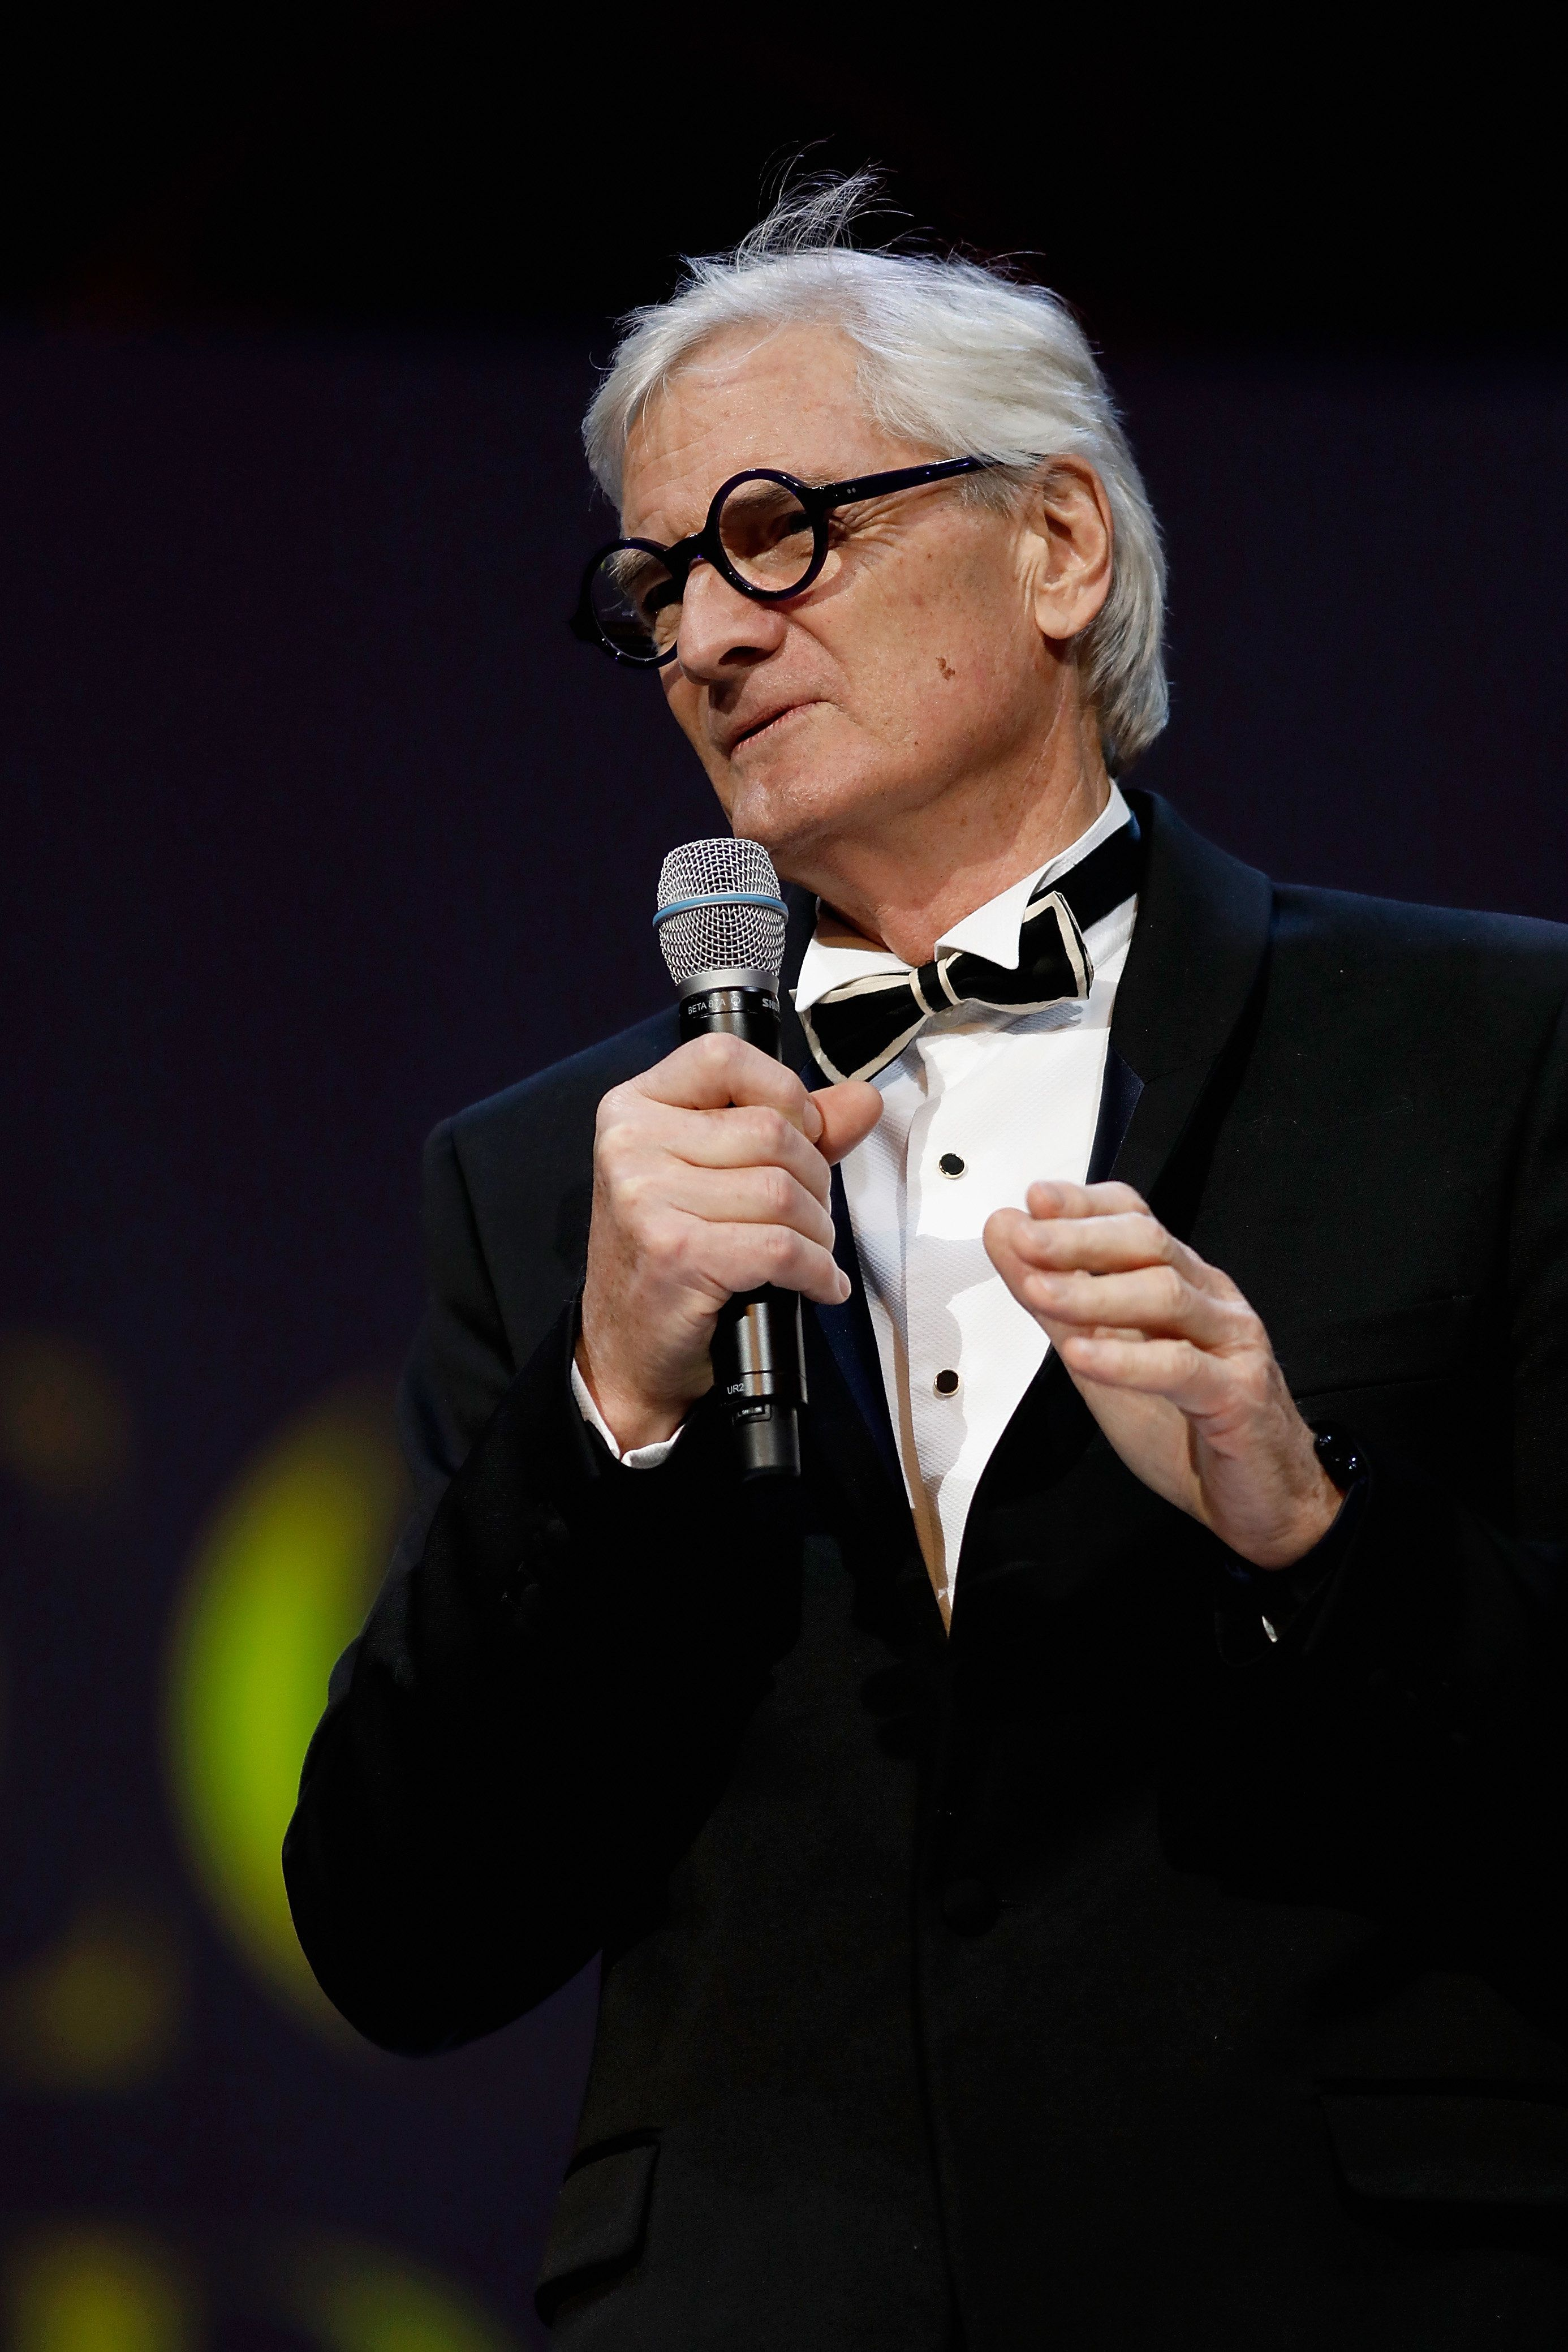 Sir James Dyson presents the Special Recognition award for Innovation on stage during The Fashion Awards